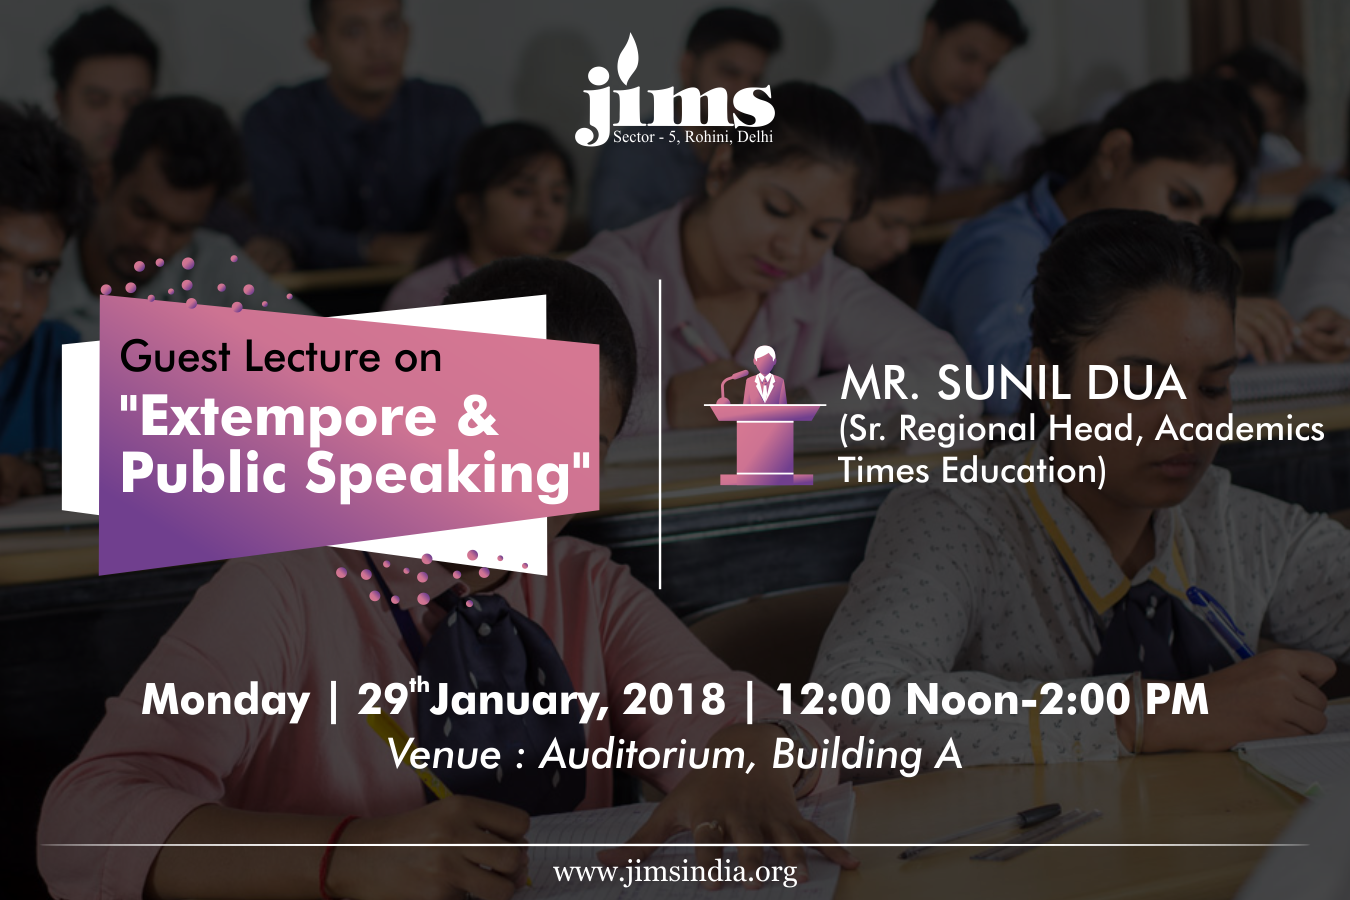 JIMS is organizing a guest lecture session on Extempore and Public Speaking